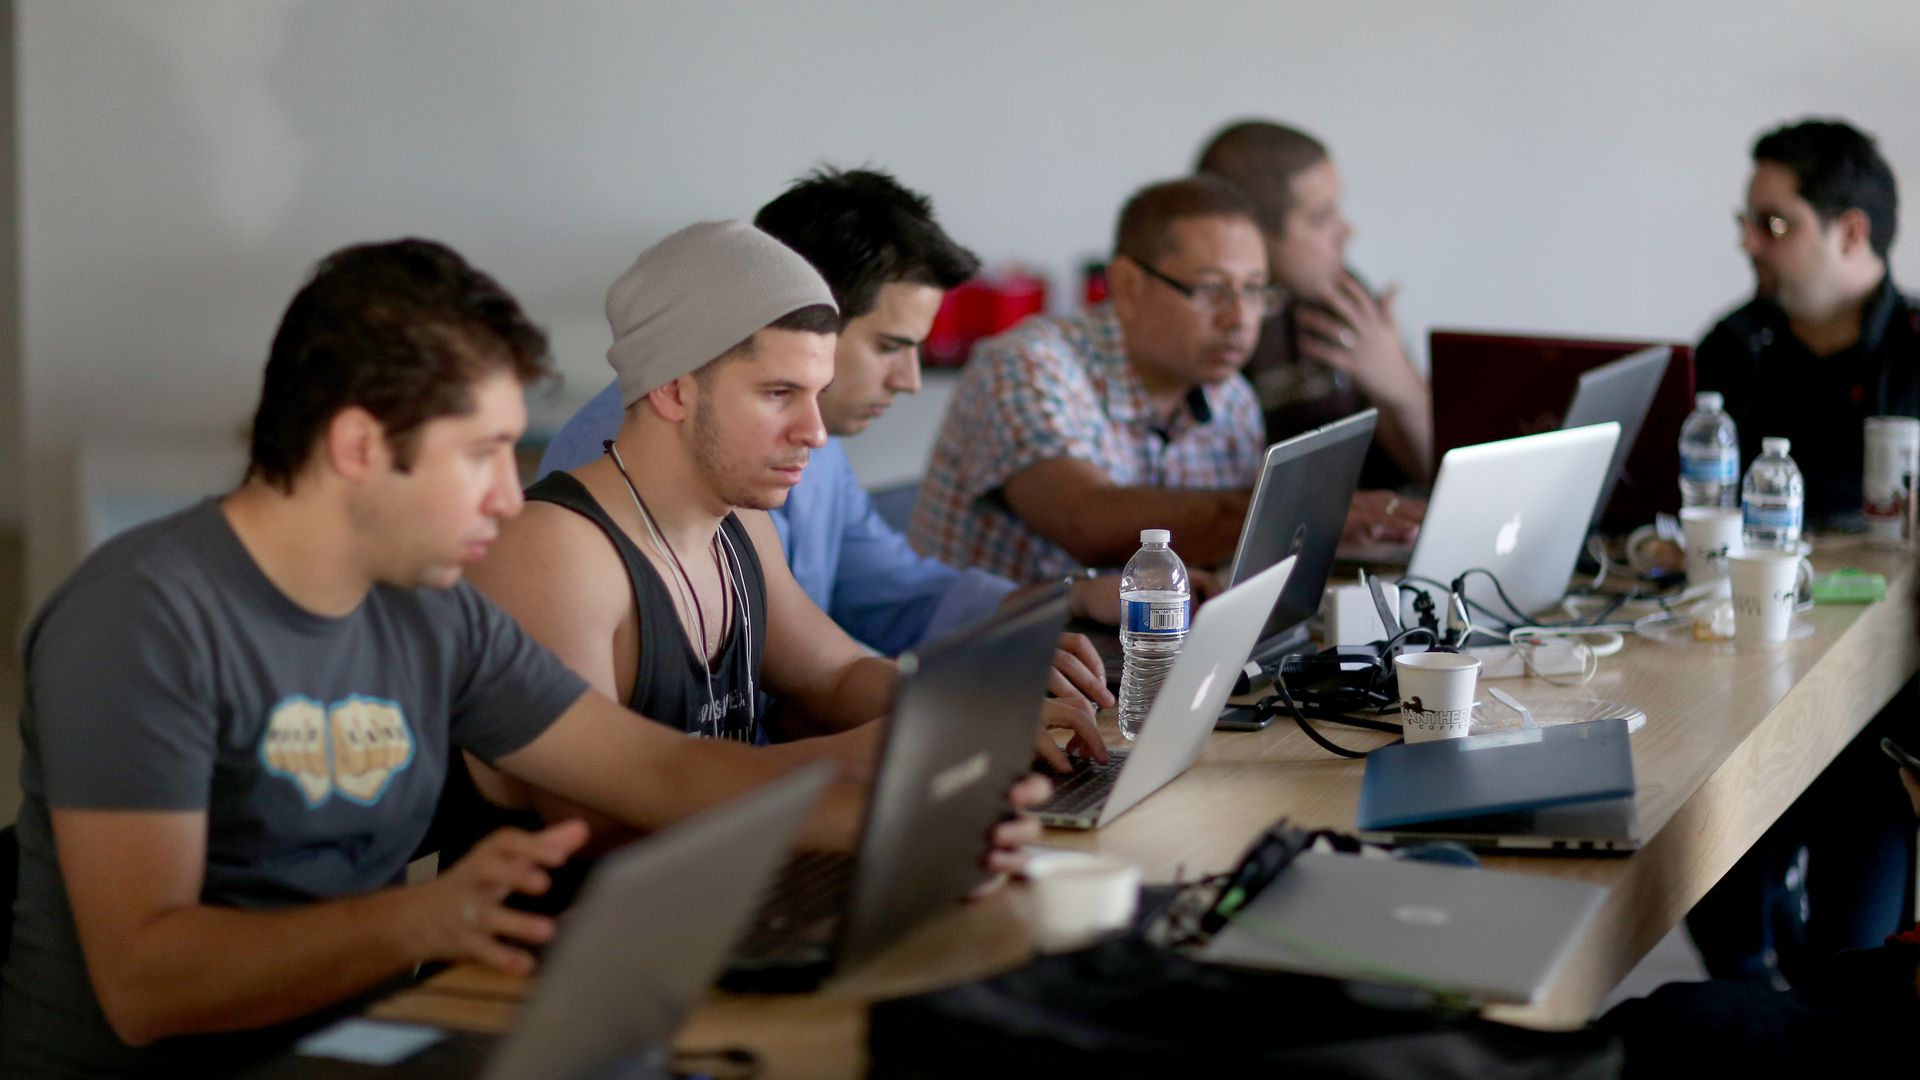 computer programmers working on laptops at a table